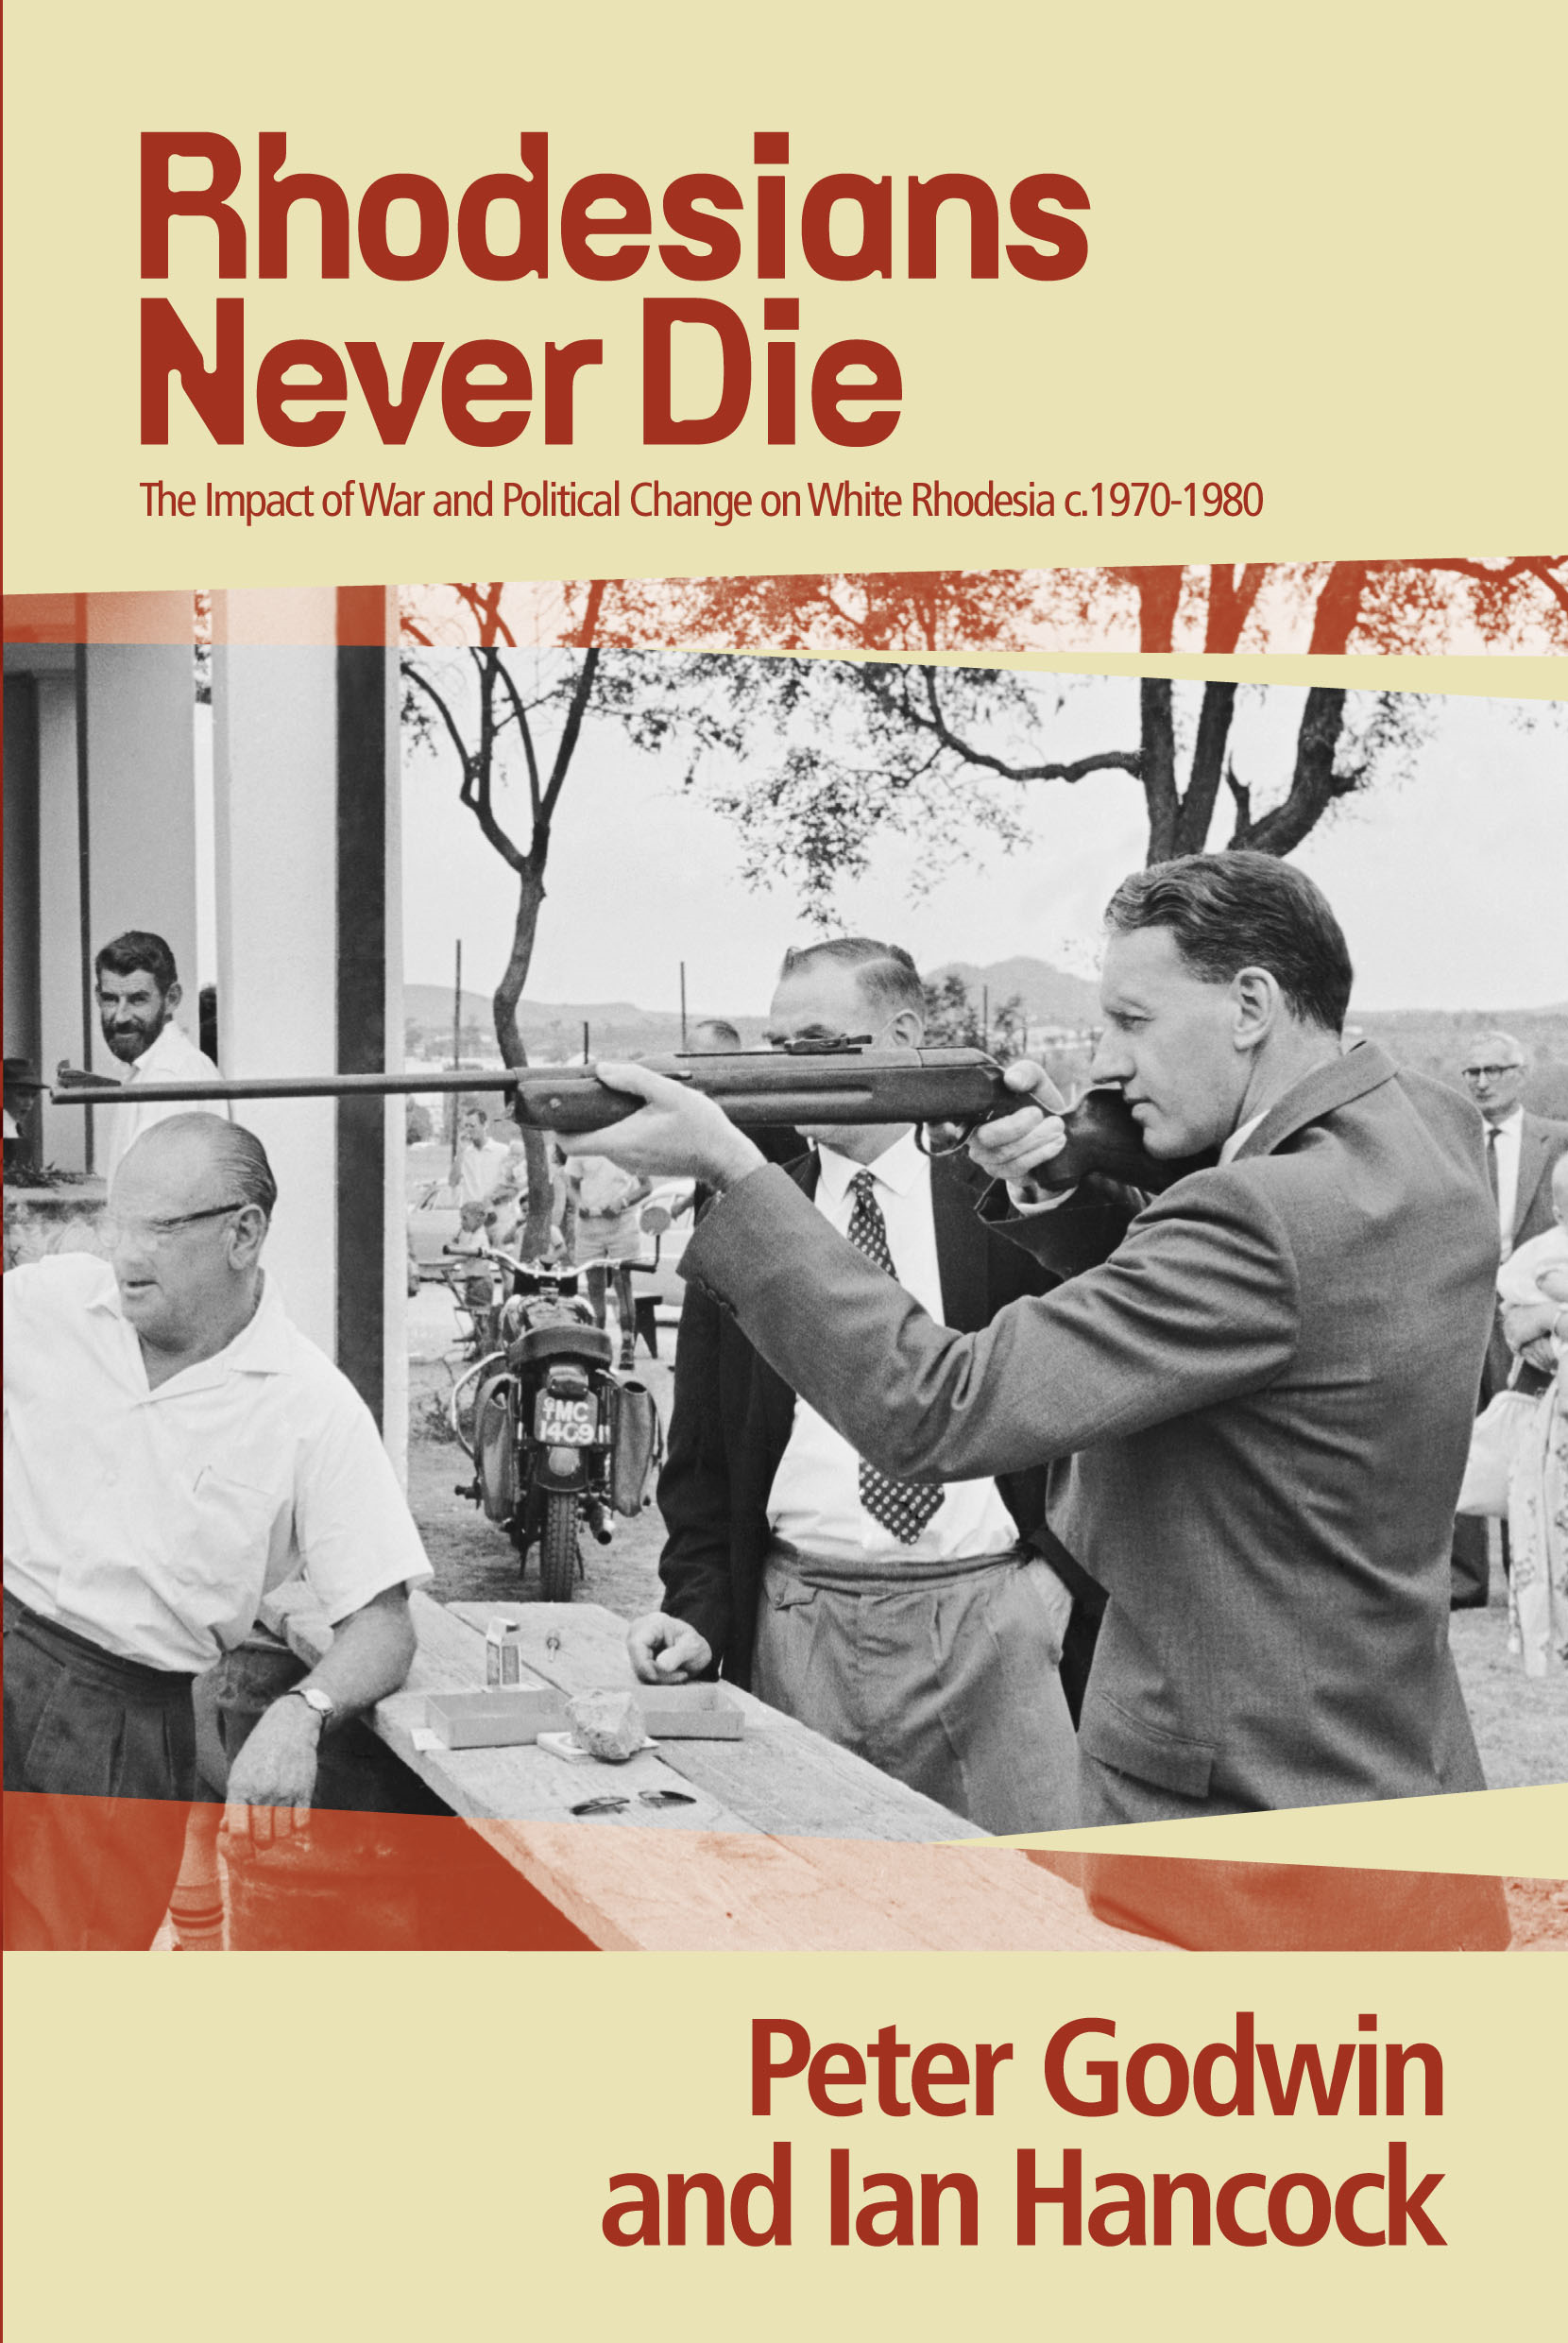 Rhodesians Never Die The Impact of War and Political change in White Rhodesia c.1970-1980